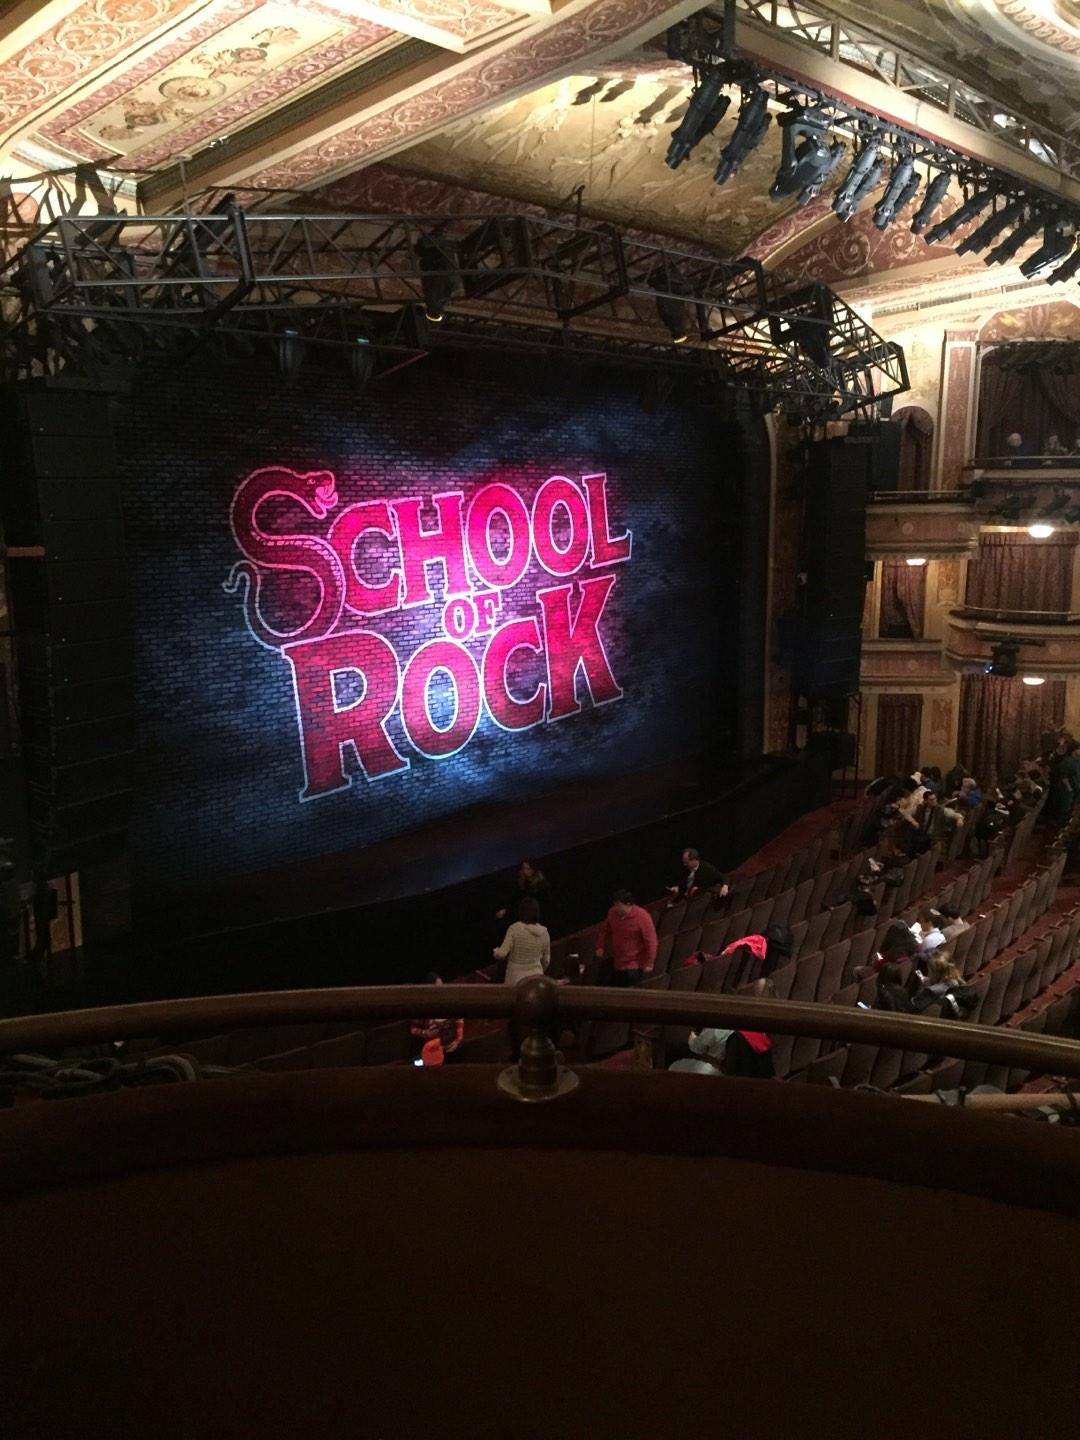 Winter Garden Theatre Section Mezzanine L Row B Seat 5